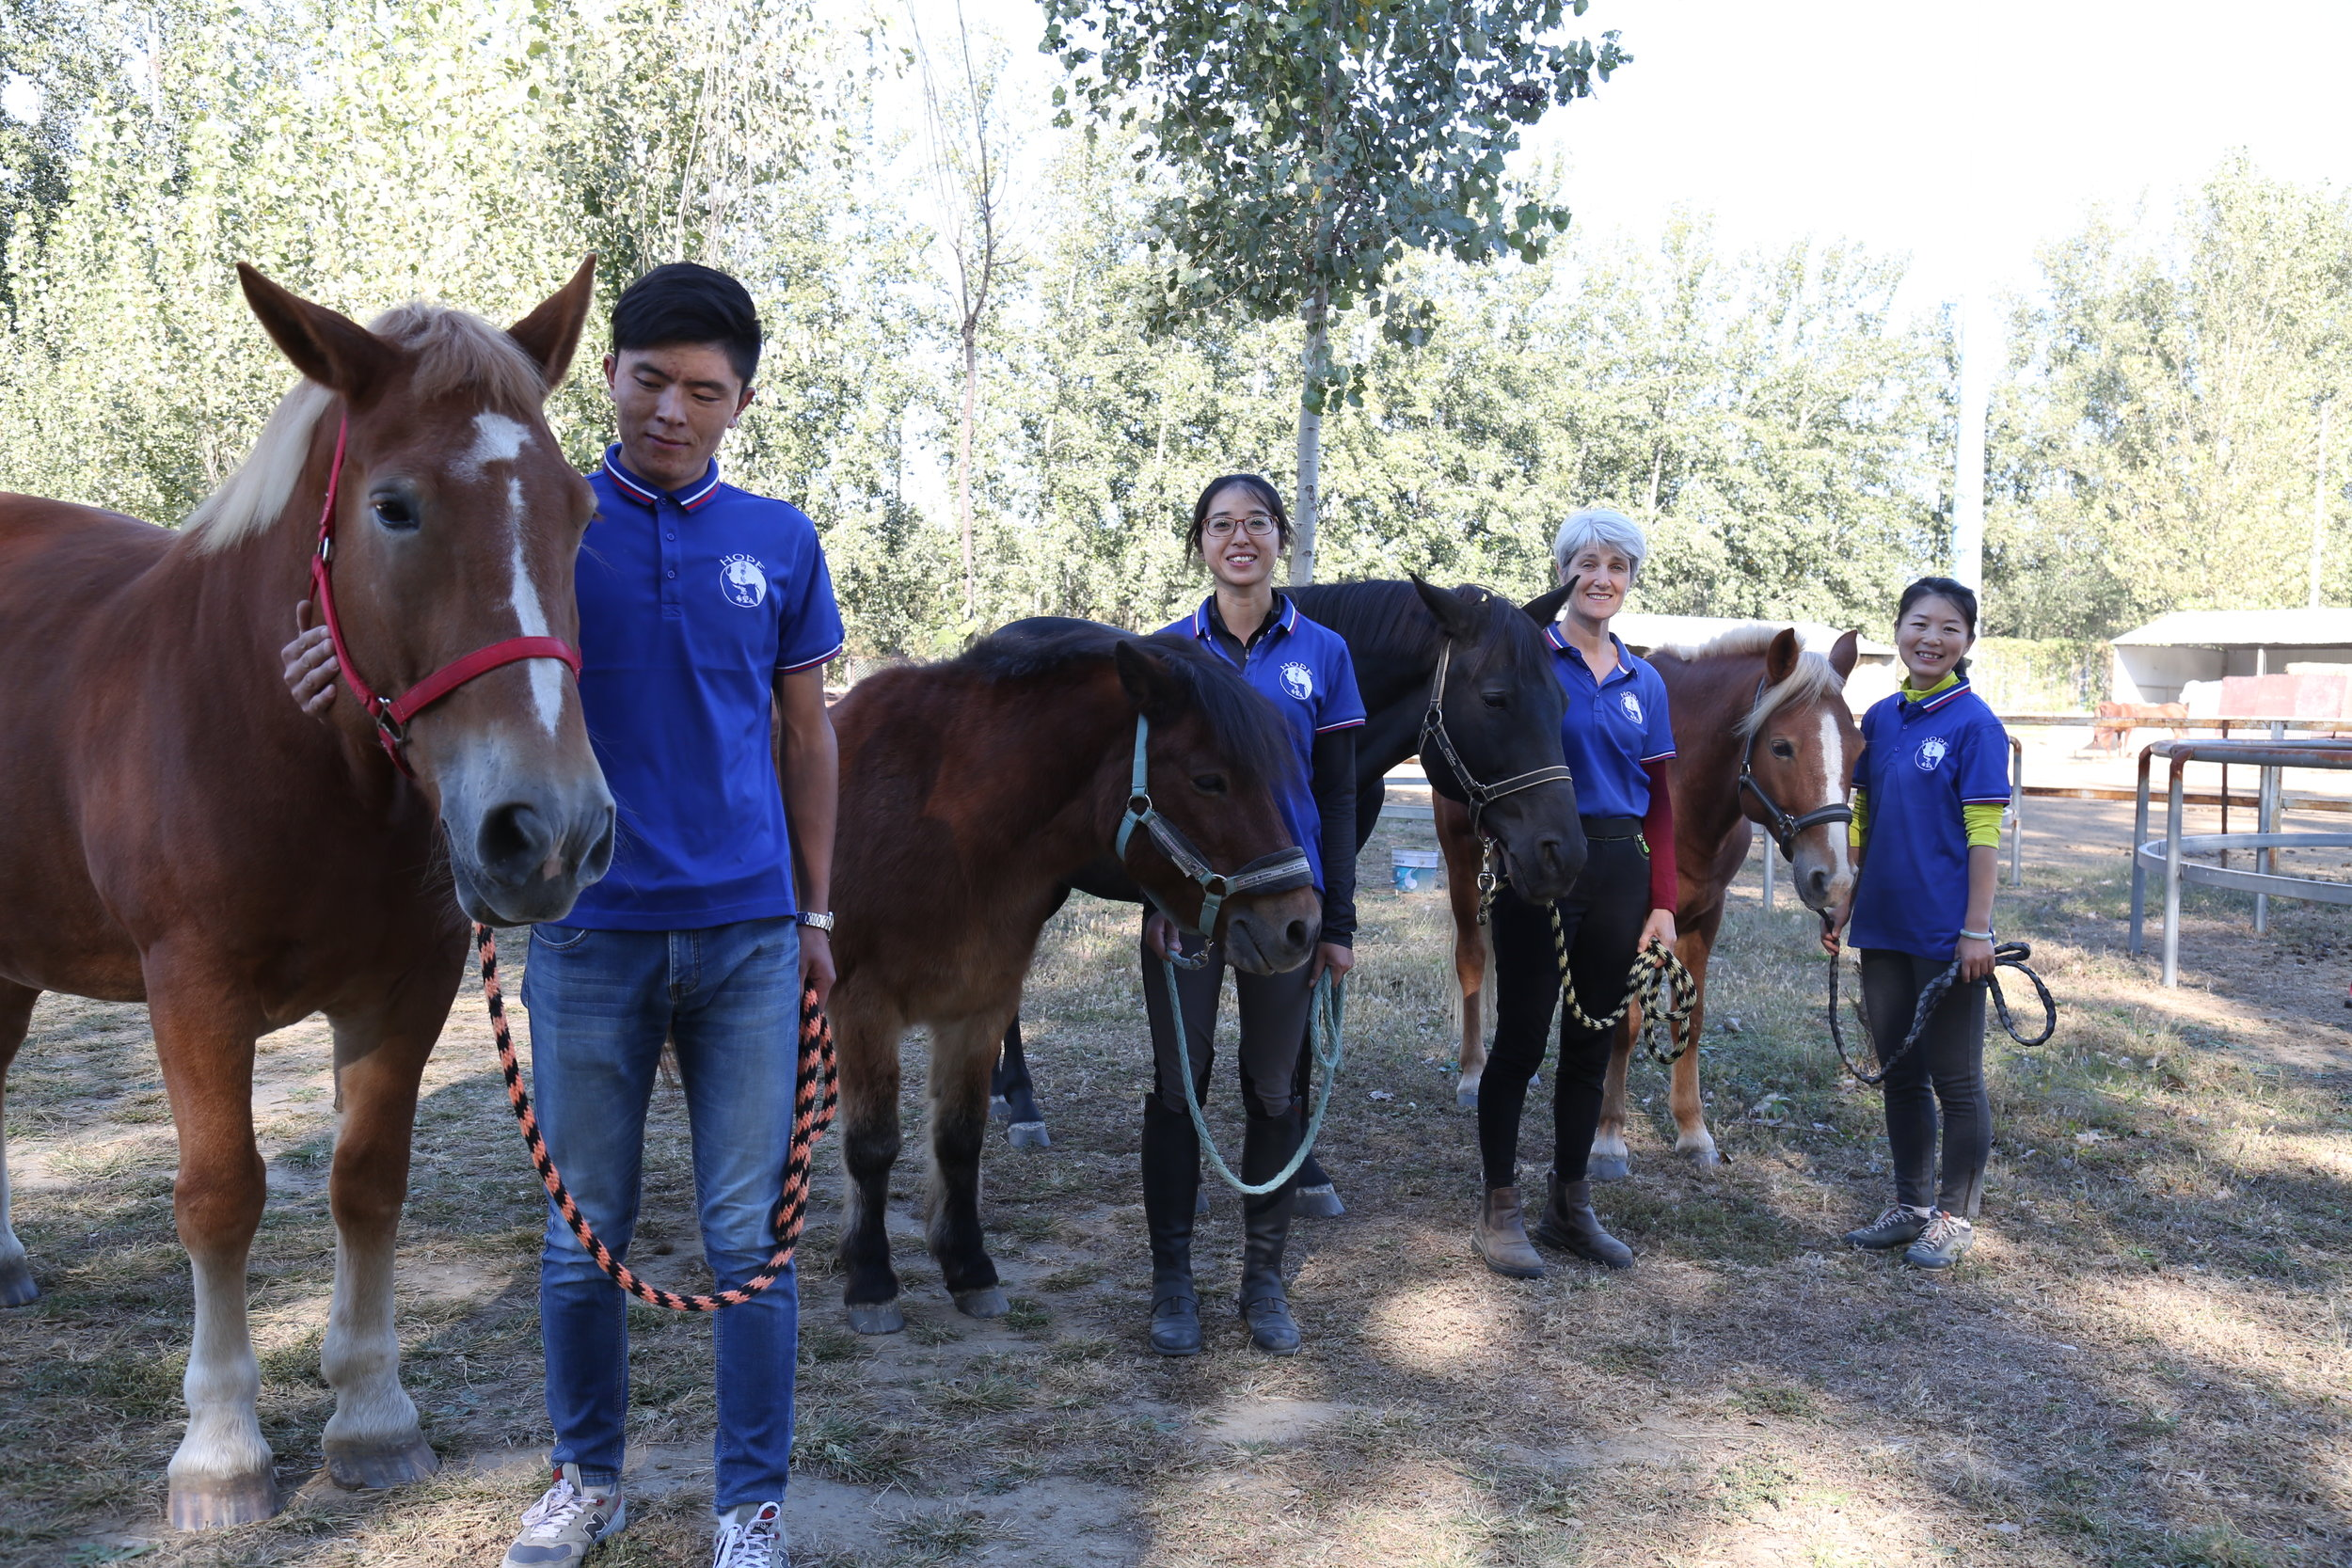 The HOPE Team and Horses